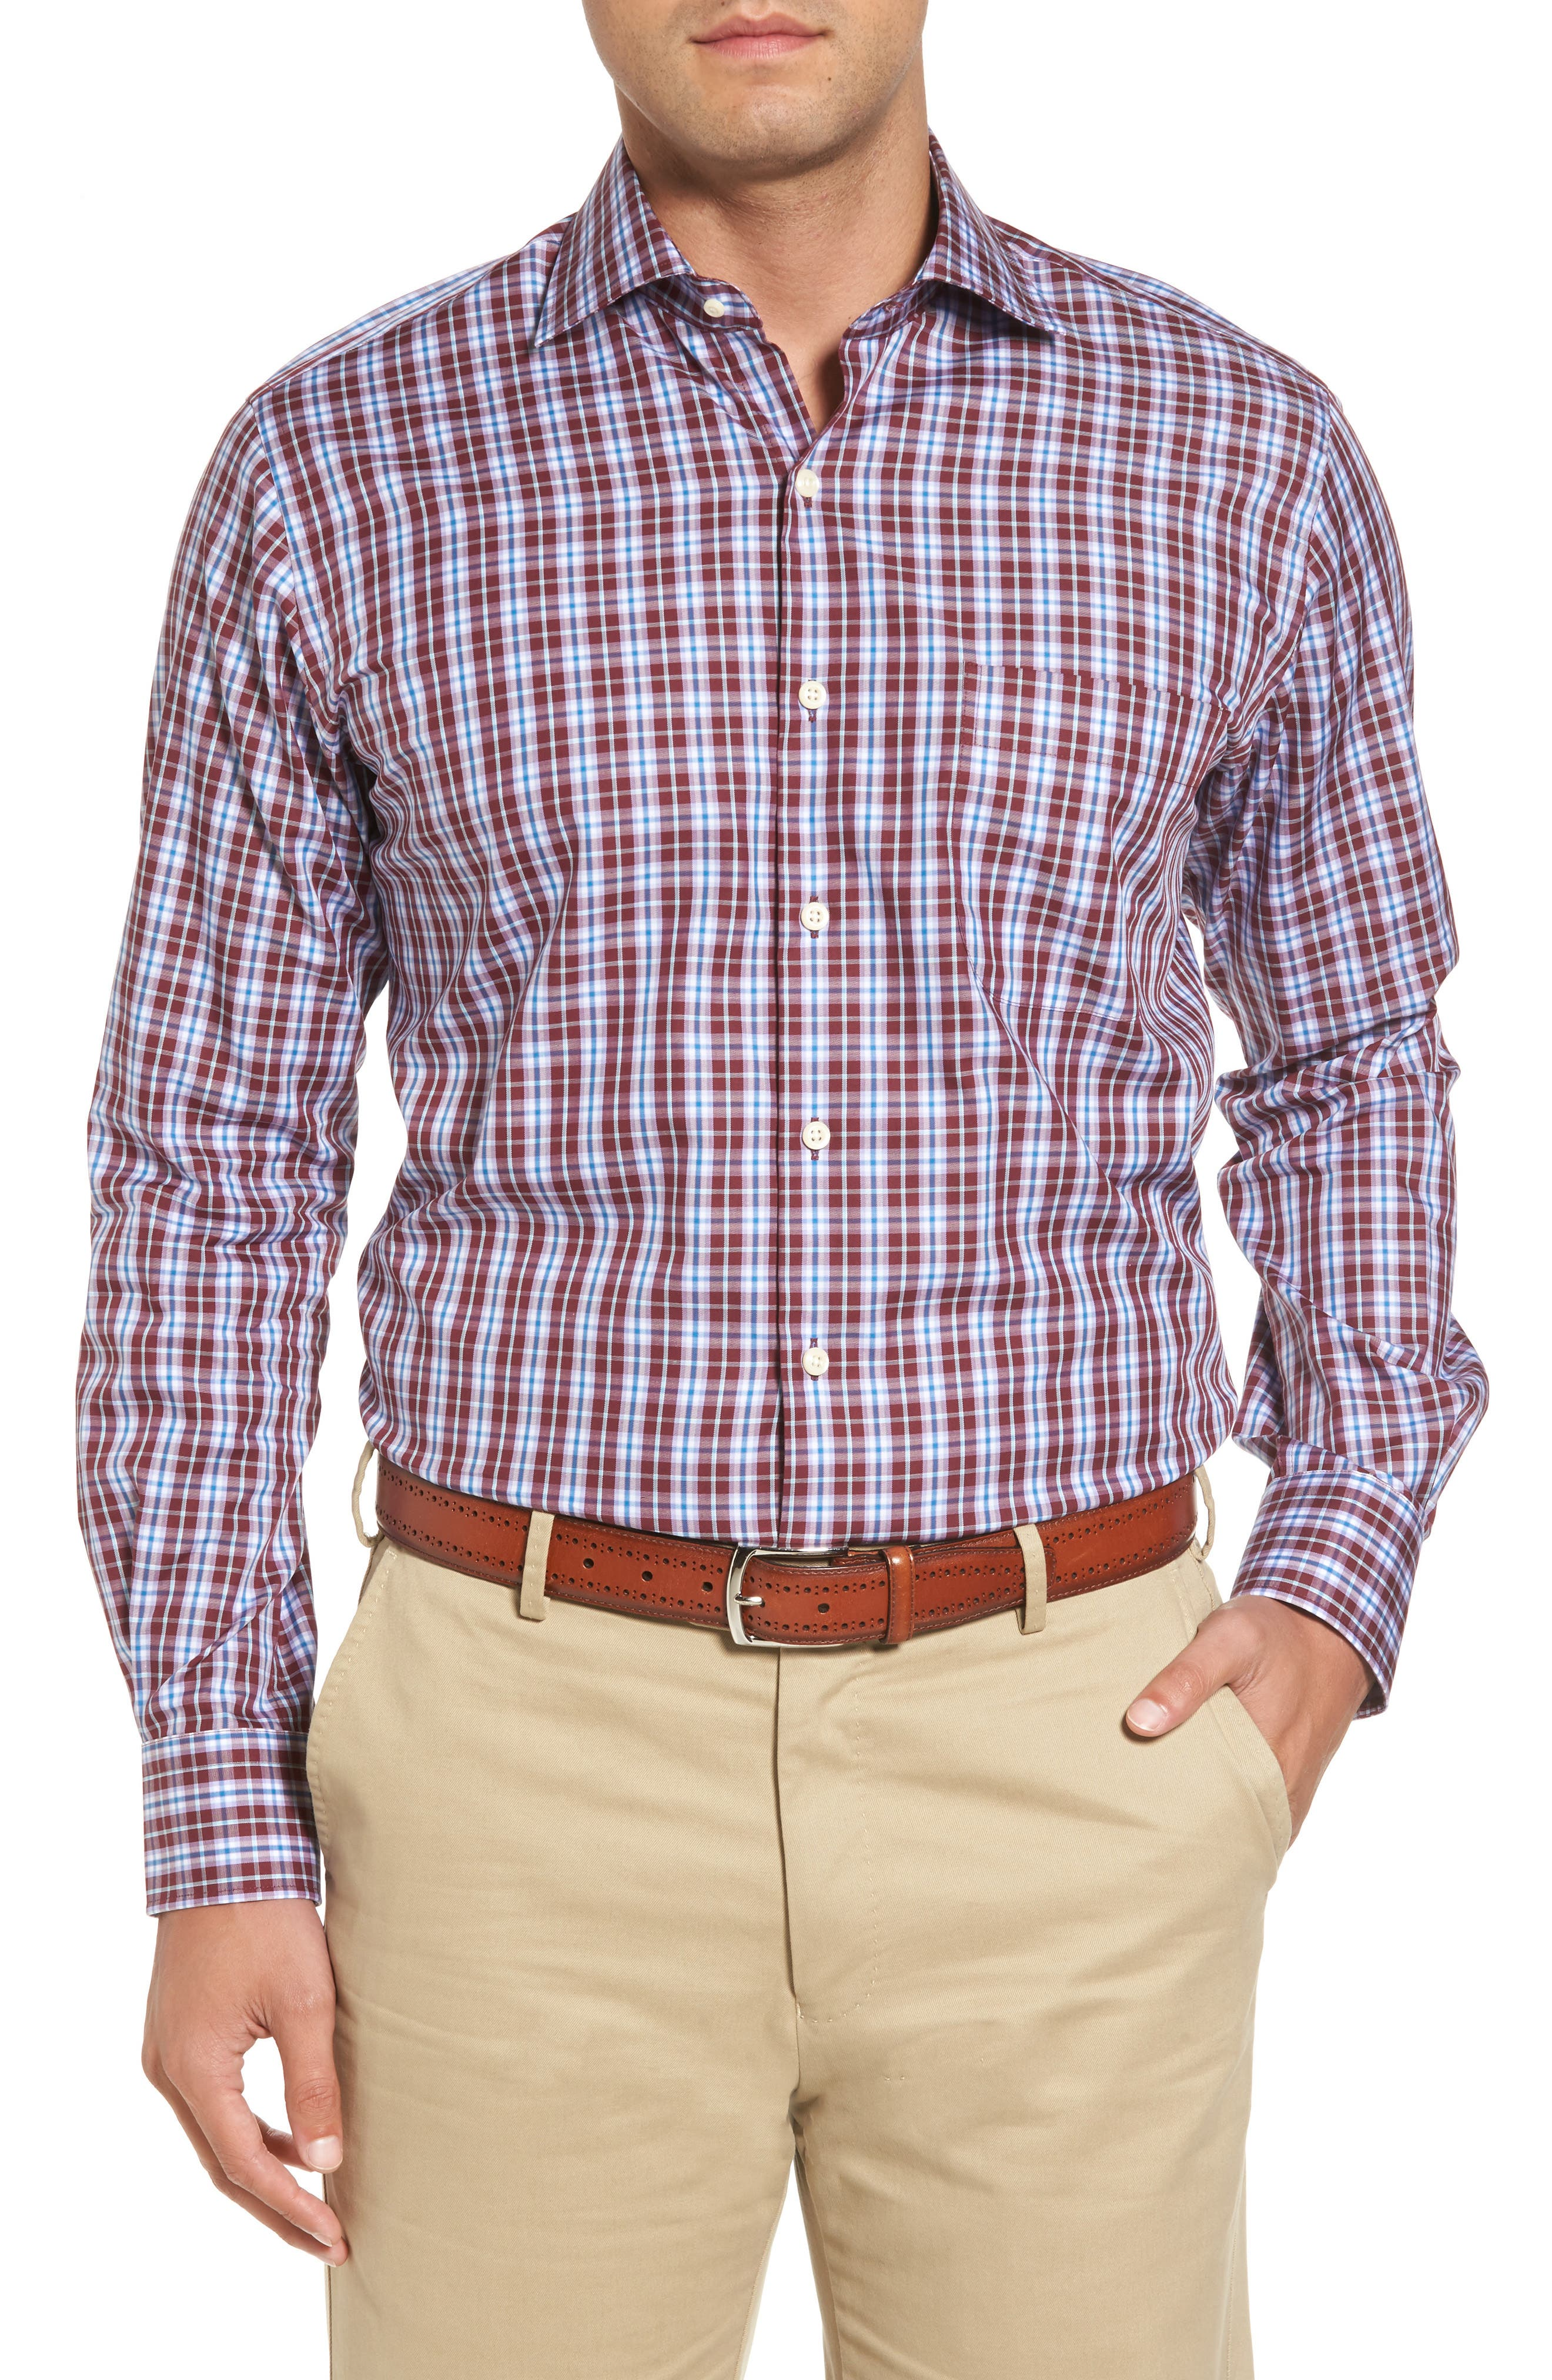 Mitchell Plaid Sport Shirt,                             Main thumbnail 1, color,                             French Wine